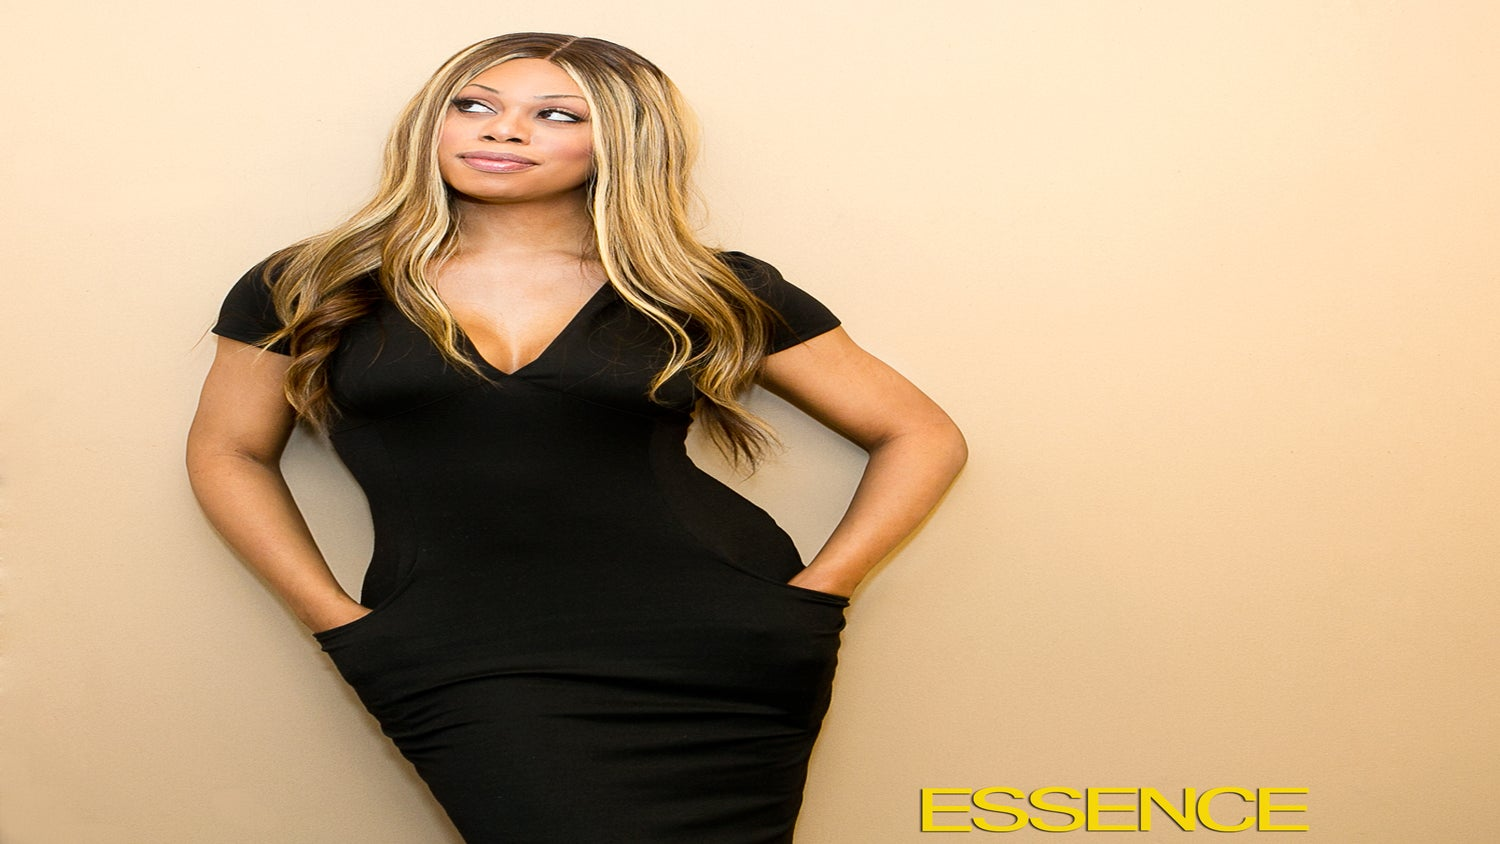 Laverne Cox Answers ESSENCE's 7 Questions on Faith and Spirituality